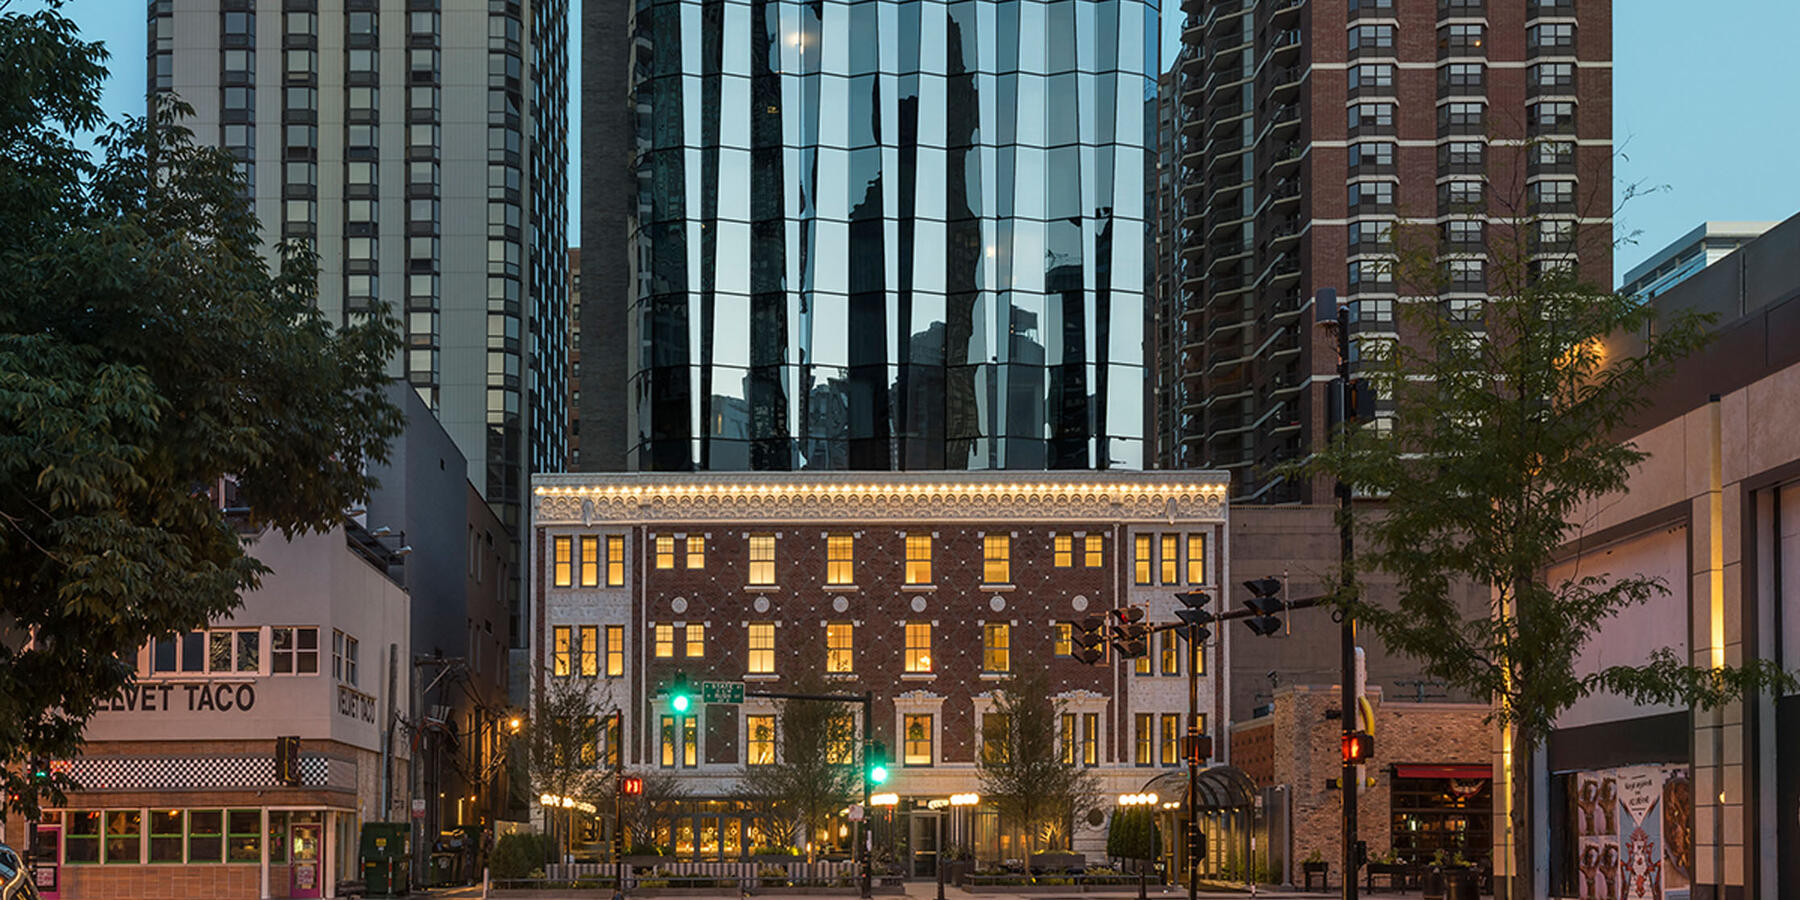 Hotel Construction & Remodeling - Viceroy Hotel Chicago exterior street view